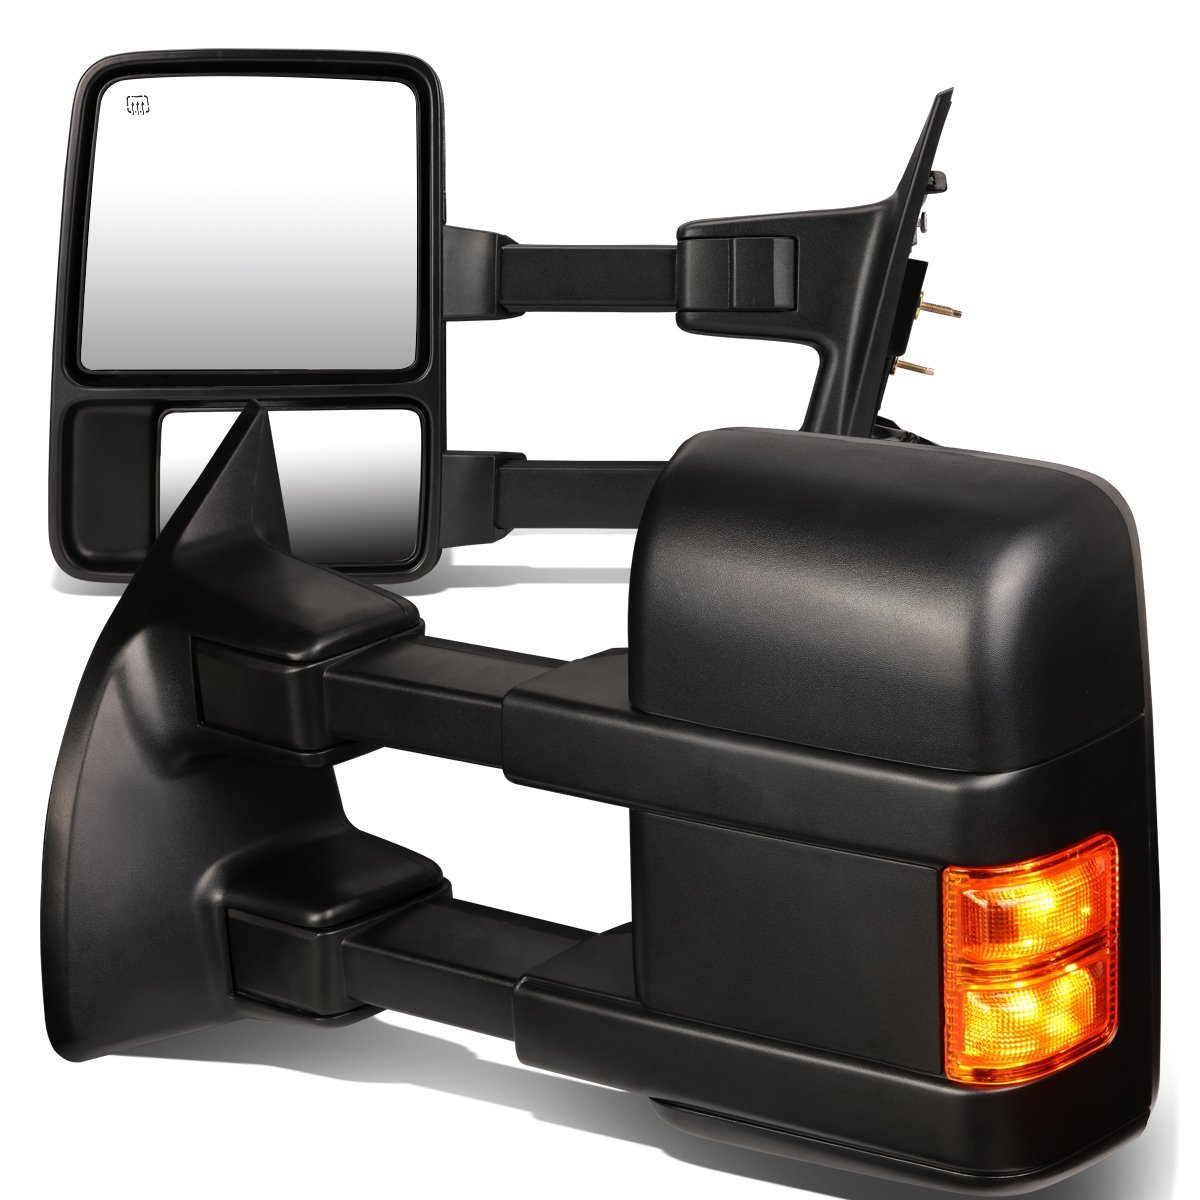 07 F550 Wiring Diagram For Trailer 99 Ford F250 F350 F450 Superduty Power Heated Turn Signal Towing Side Mirror